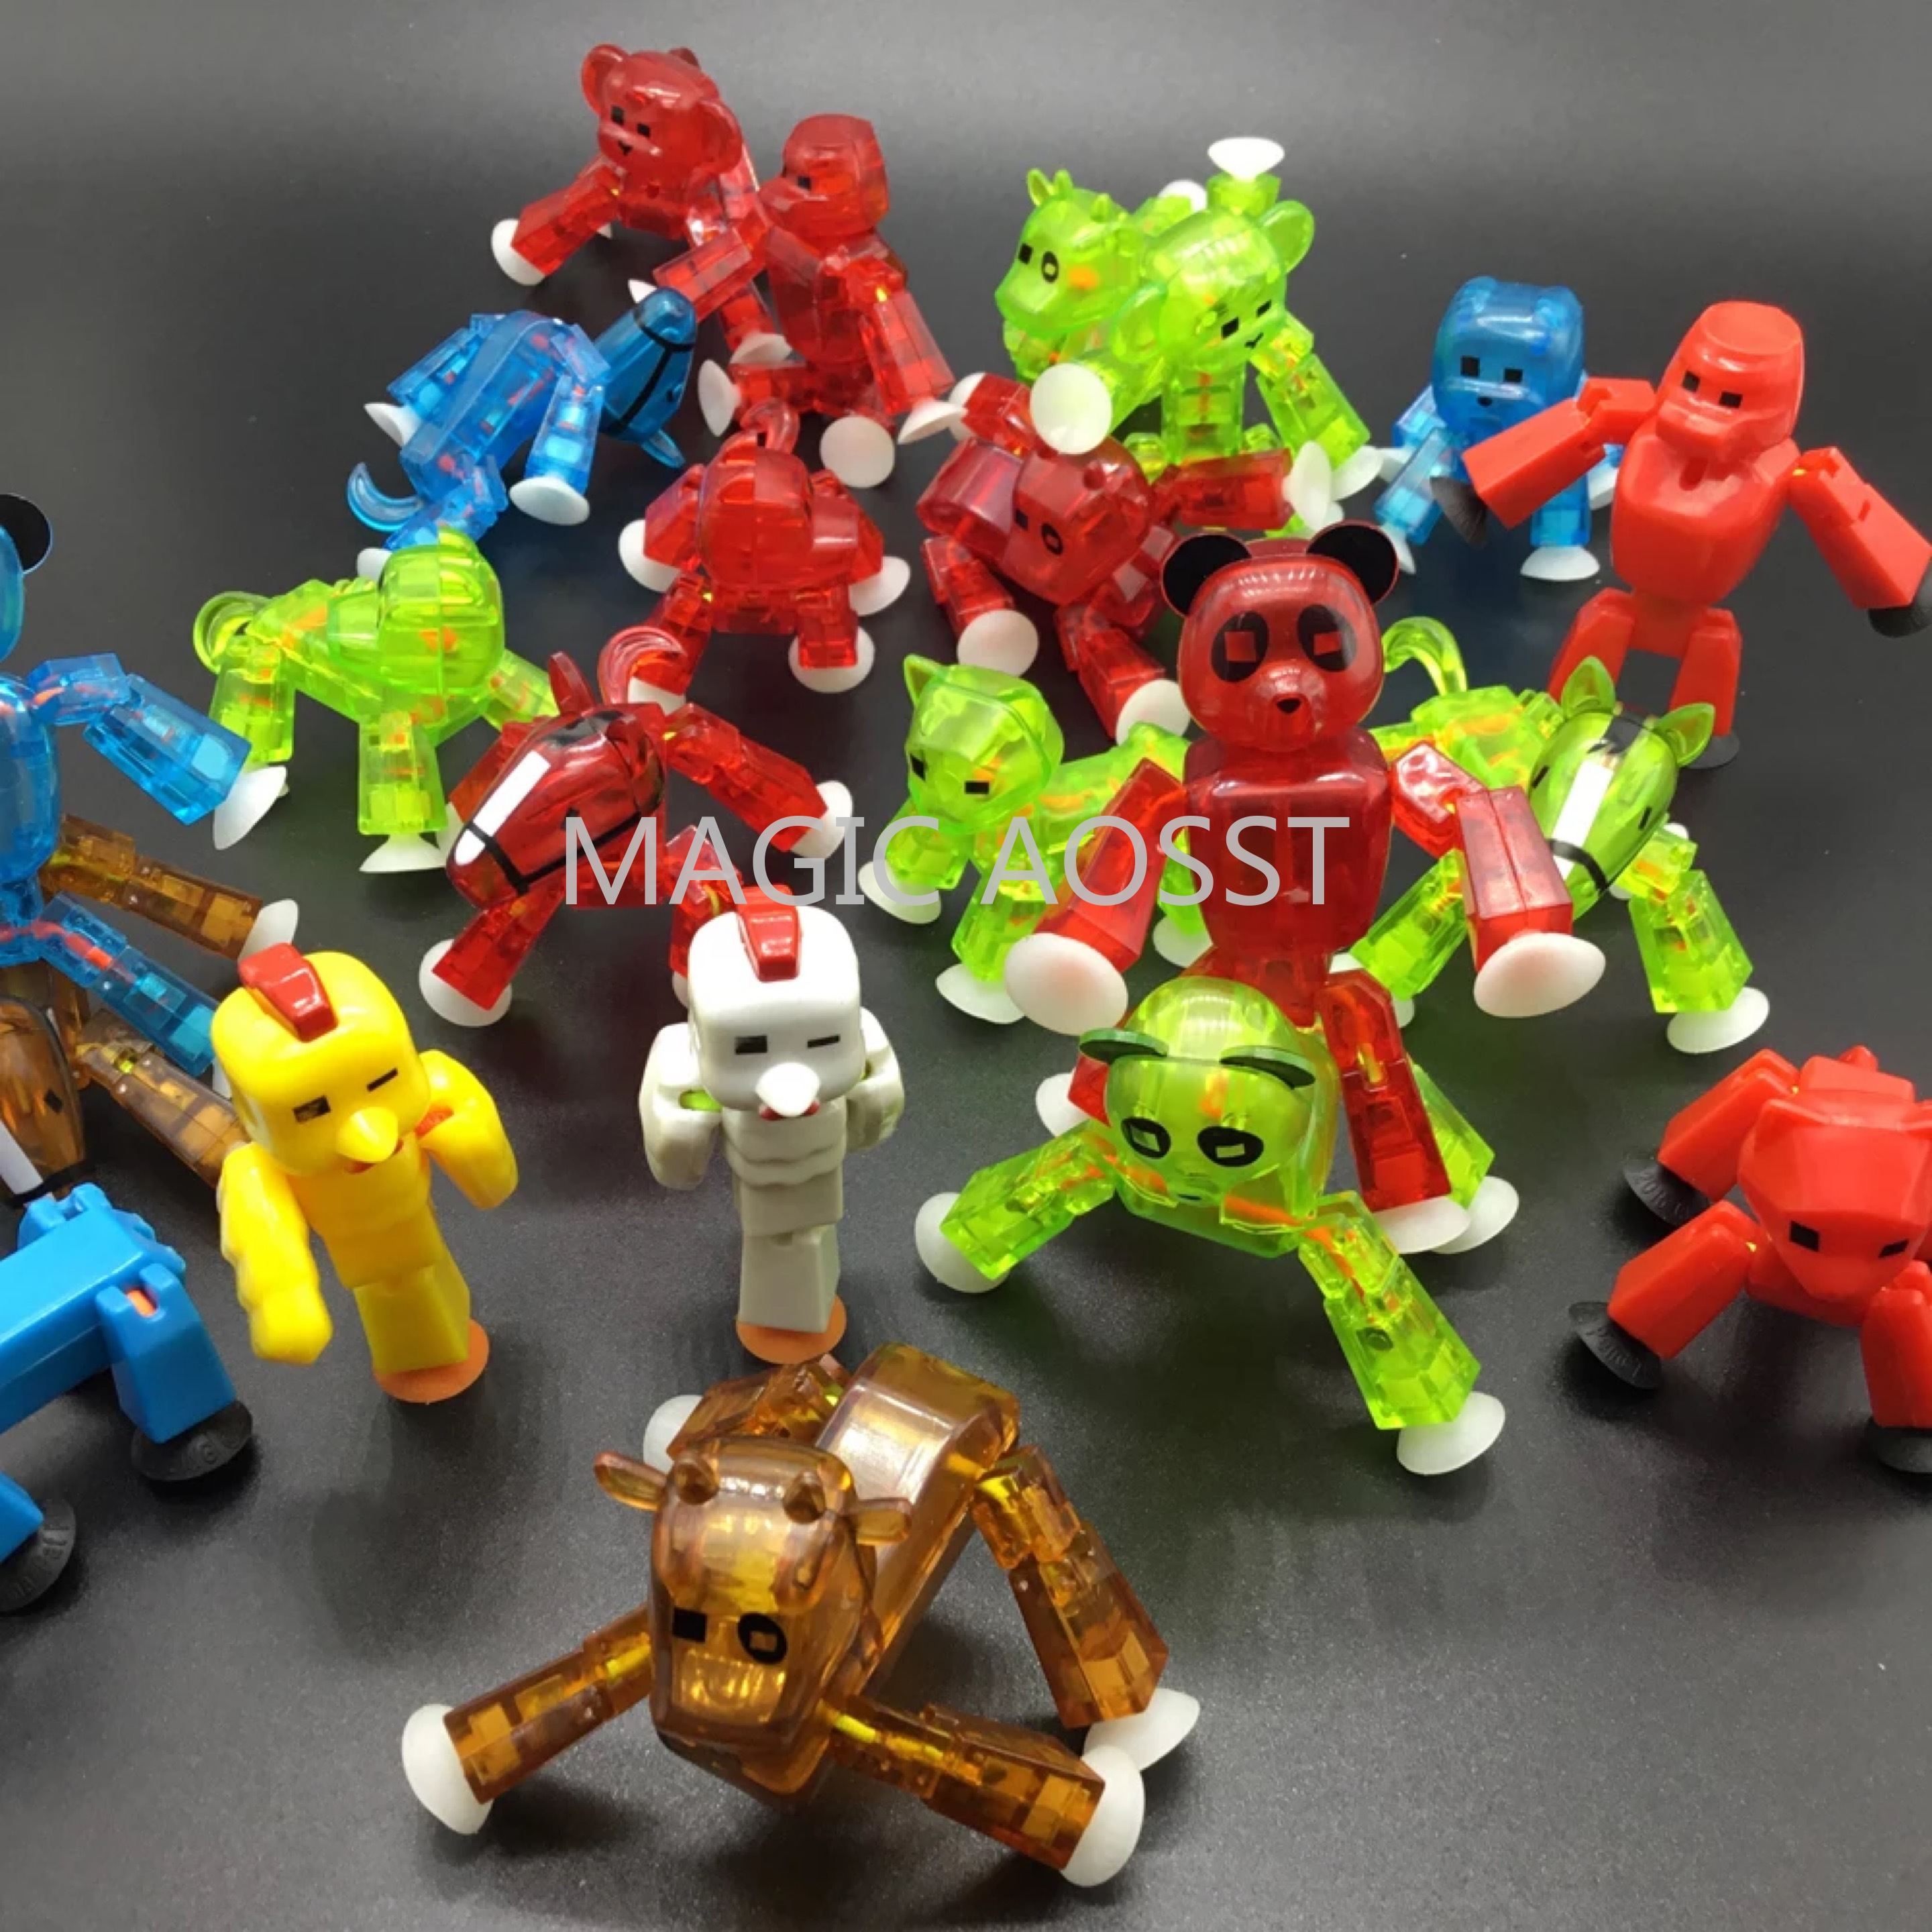 Image 5 - 20pcs/lot Colors Randomly Sending Cute Sticky Animal Robot Sucker Suction Cup Funny Deformable Stick Bot Action Figure Toys-in Action & Toy Figures from Toys & Hobbies